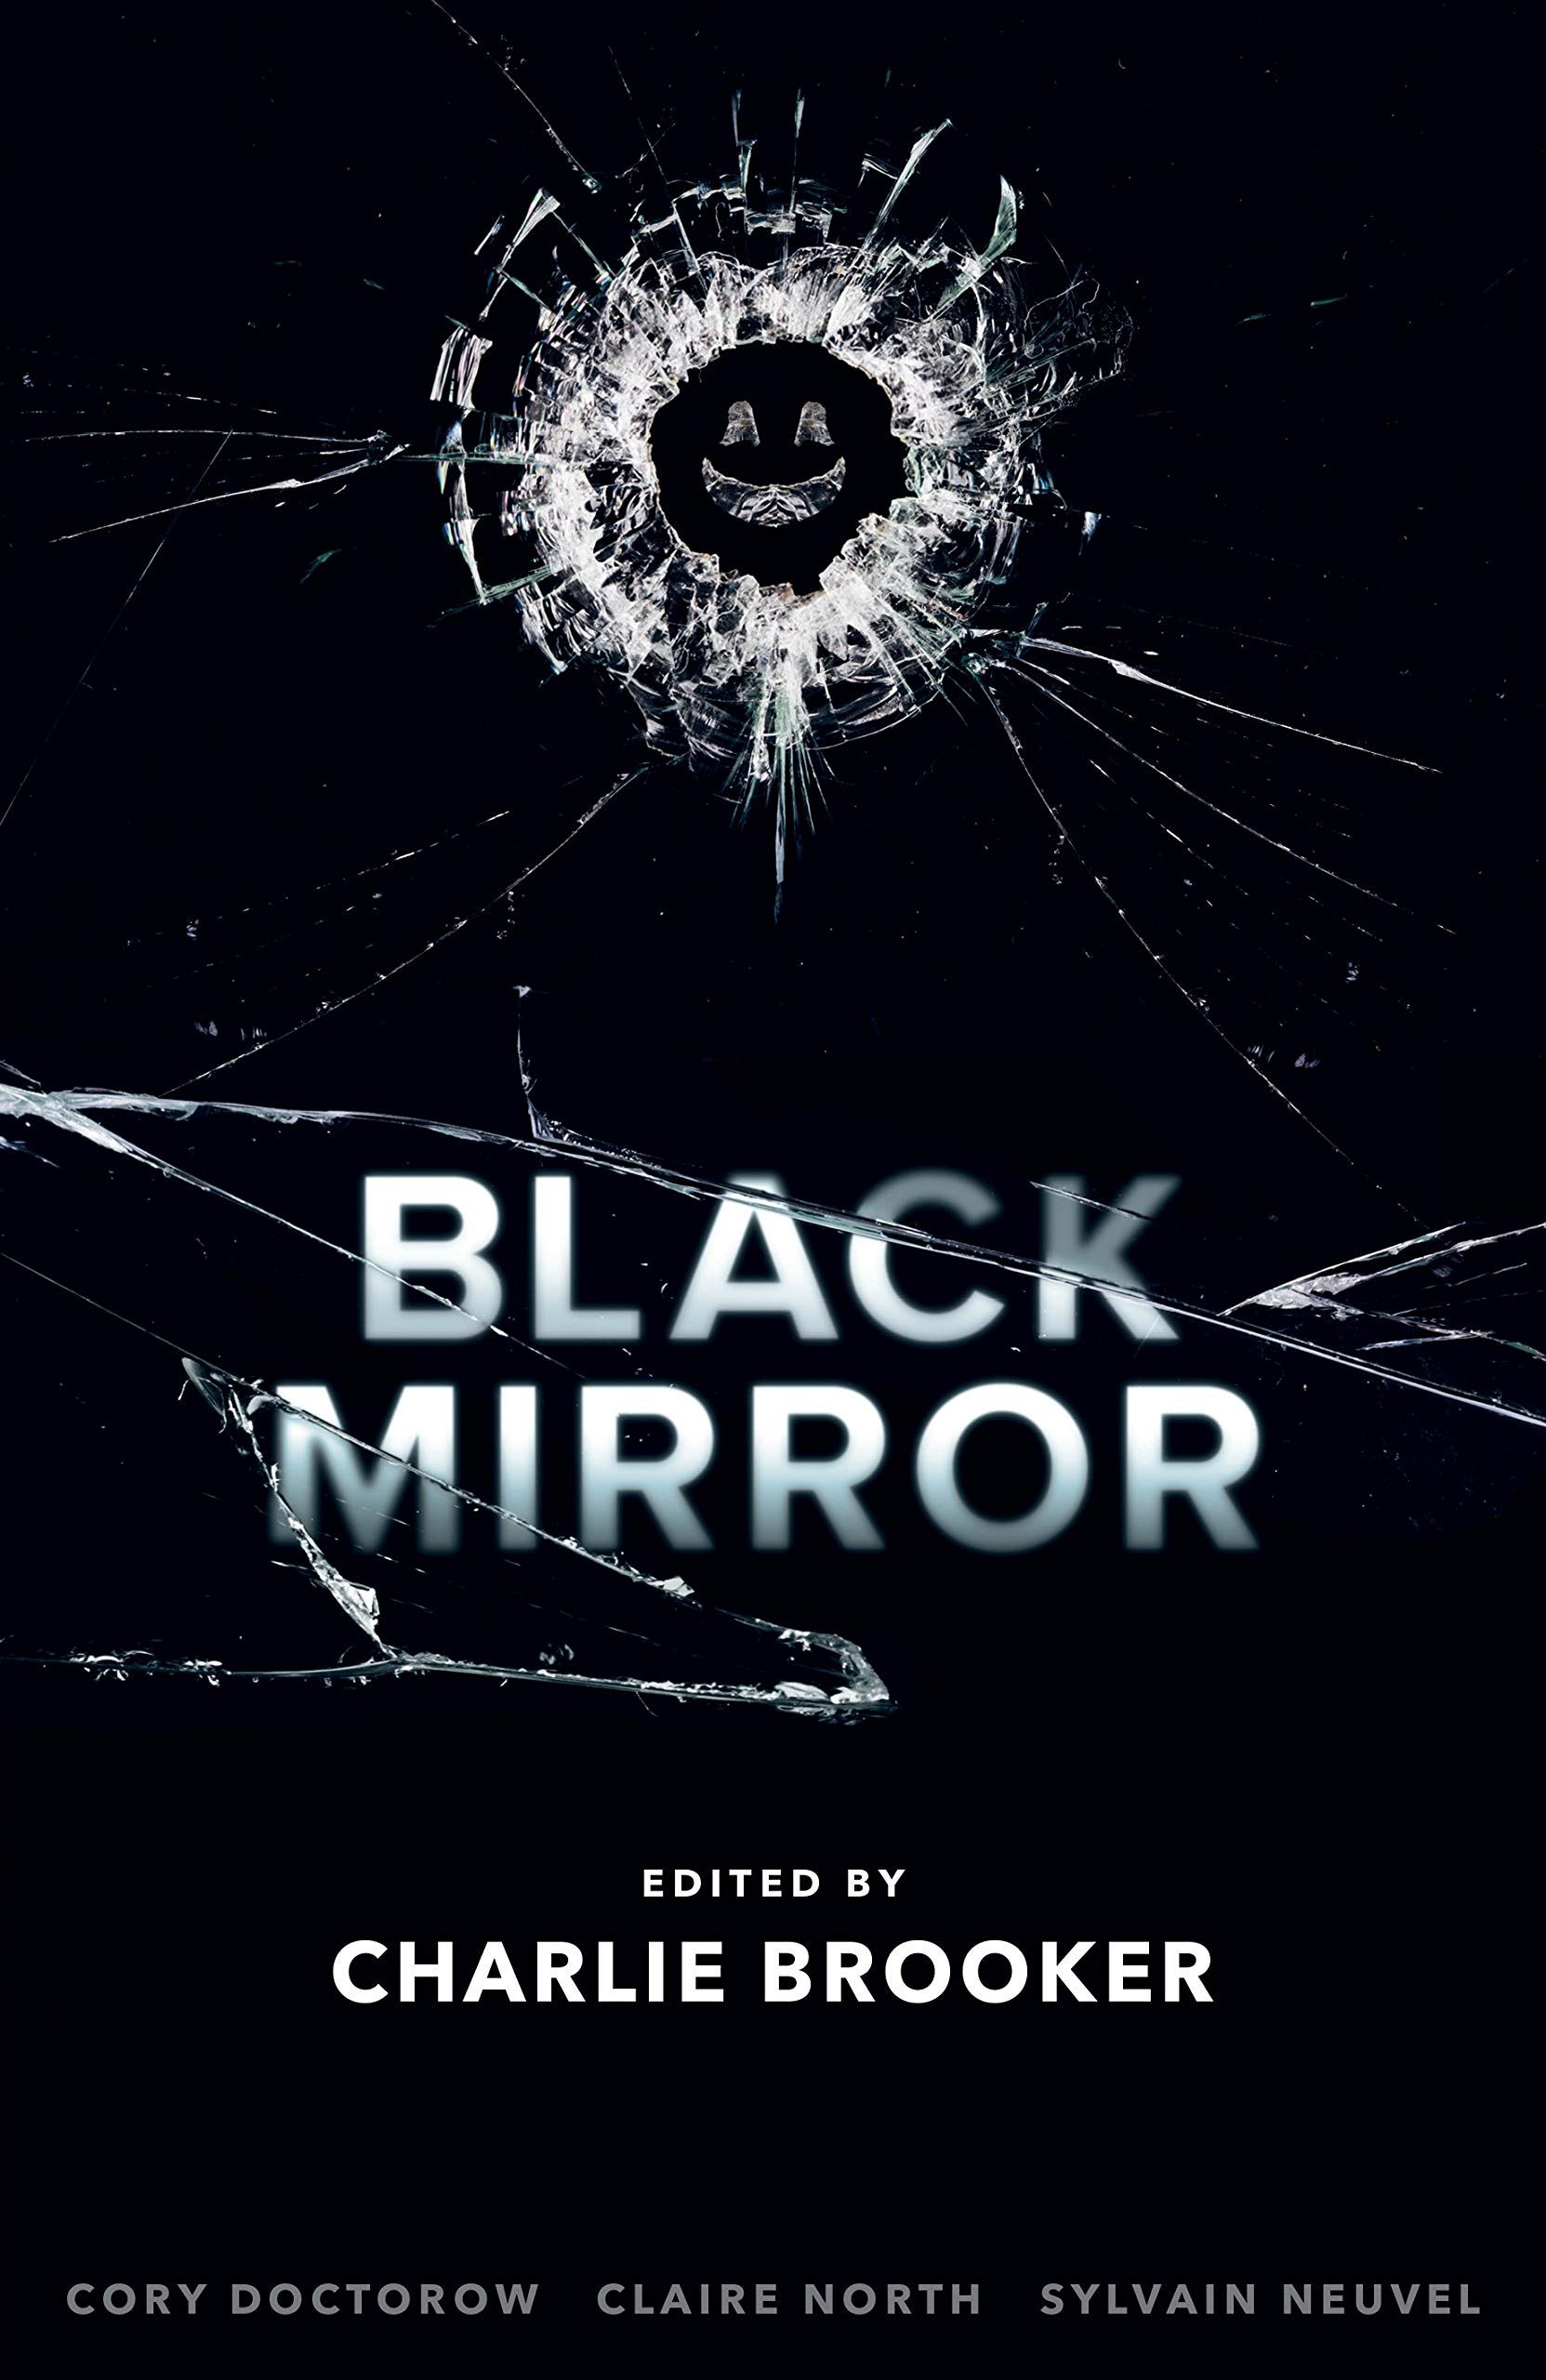 """Image search result for """"Black Mirror"""""""